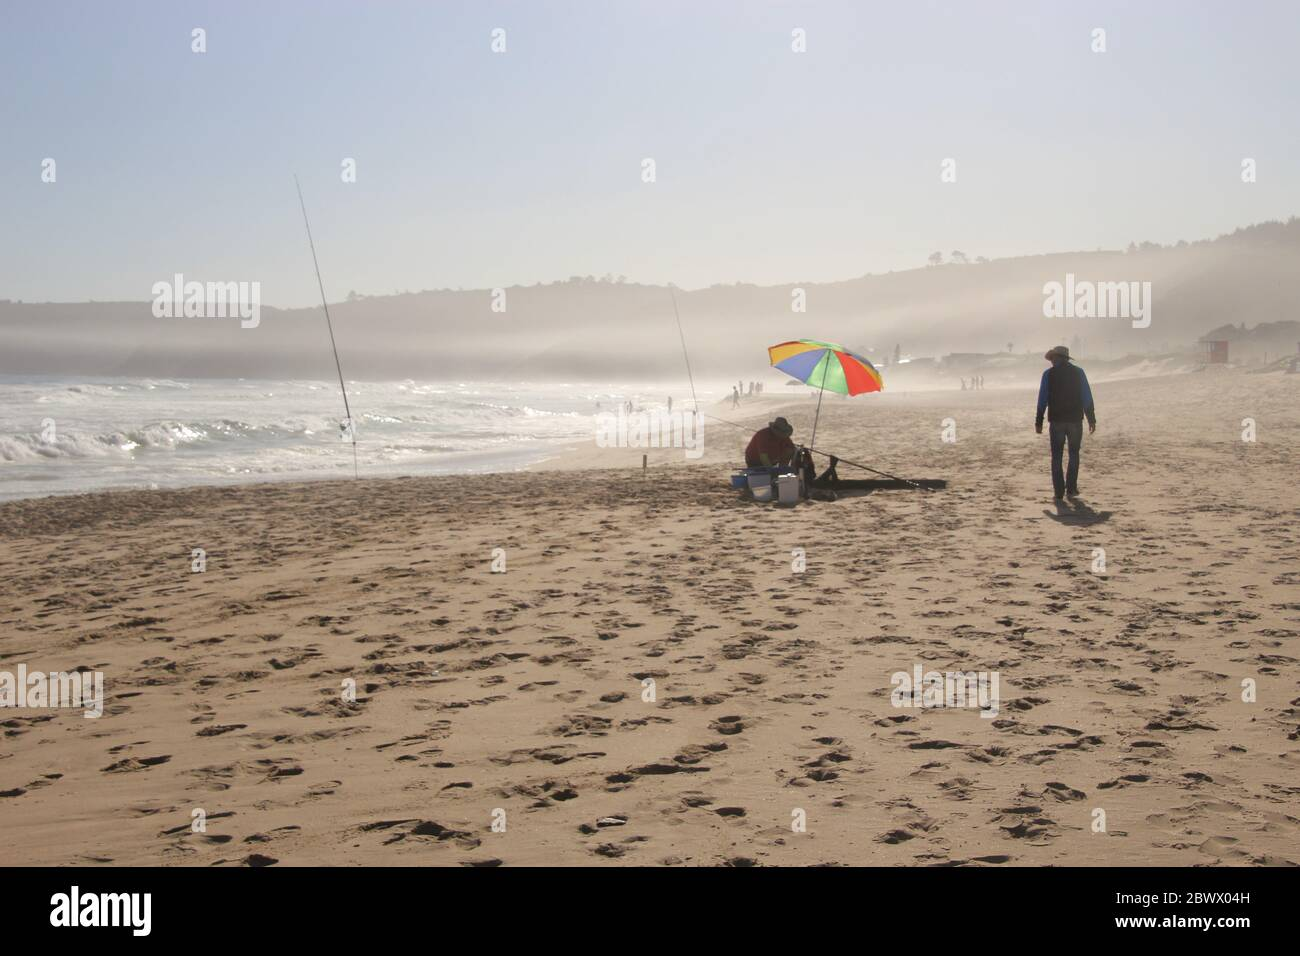 The beach of Wilderness and wild Indian Ocean on Garden Route, South Africa, Africa. An angler on the beach. Stock Photo